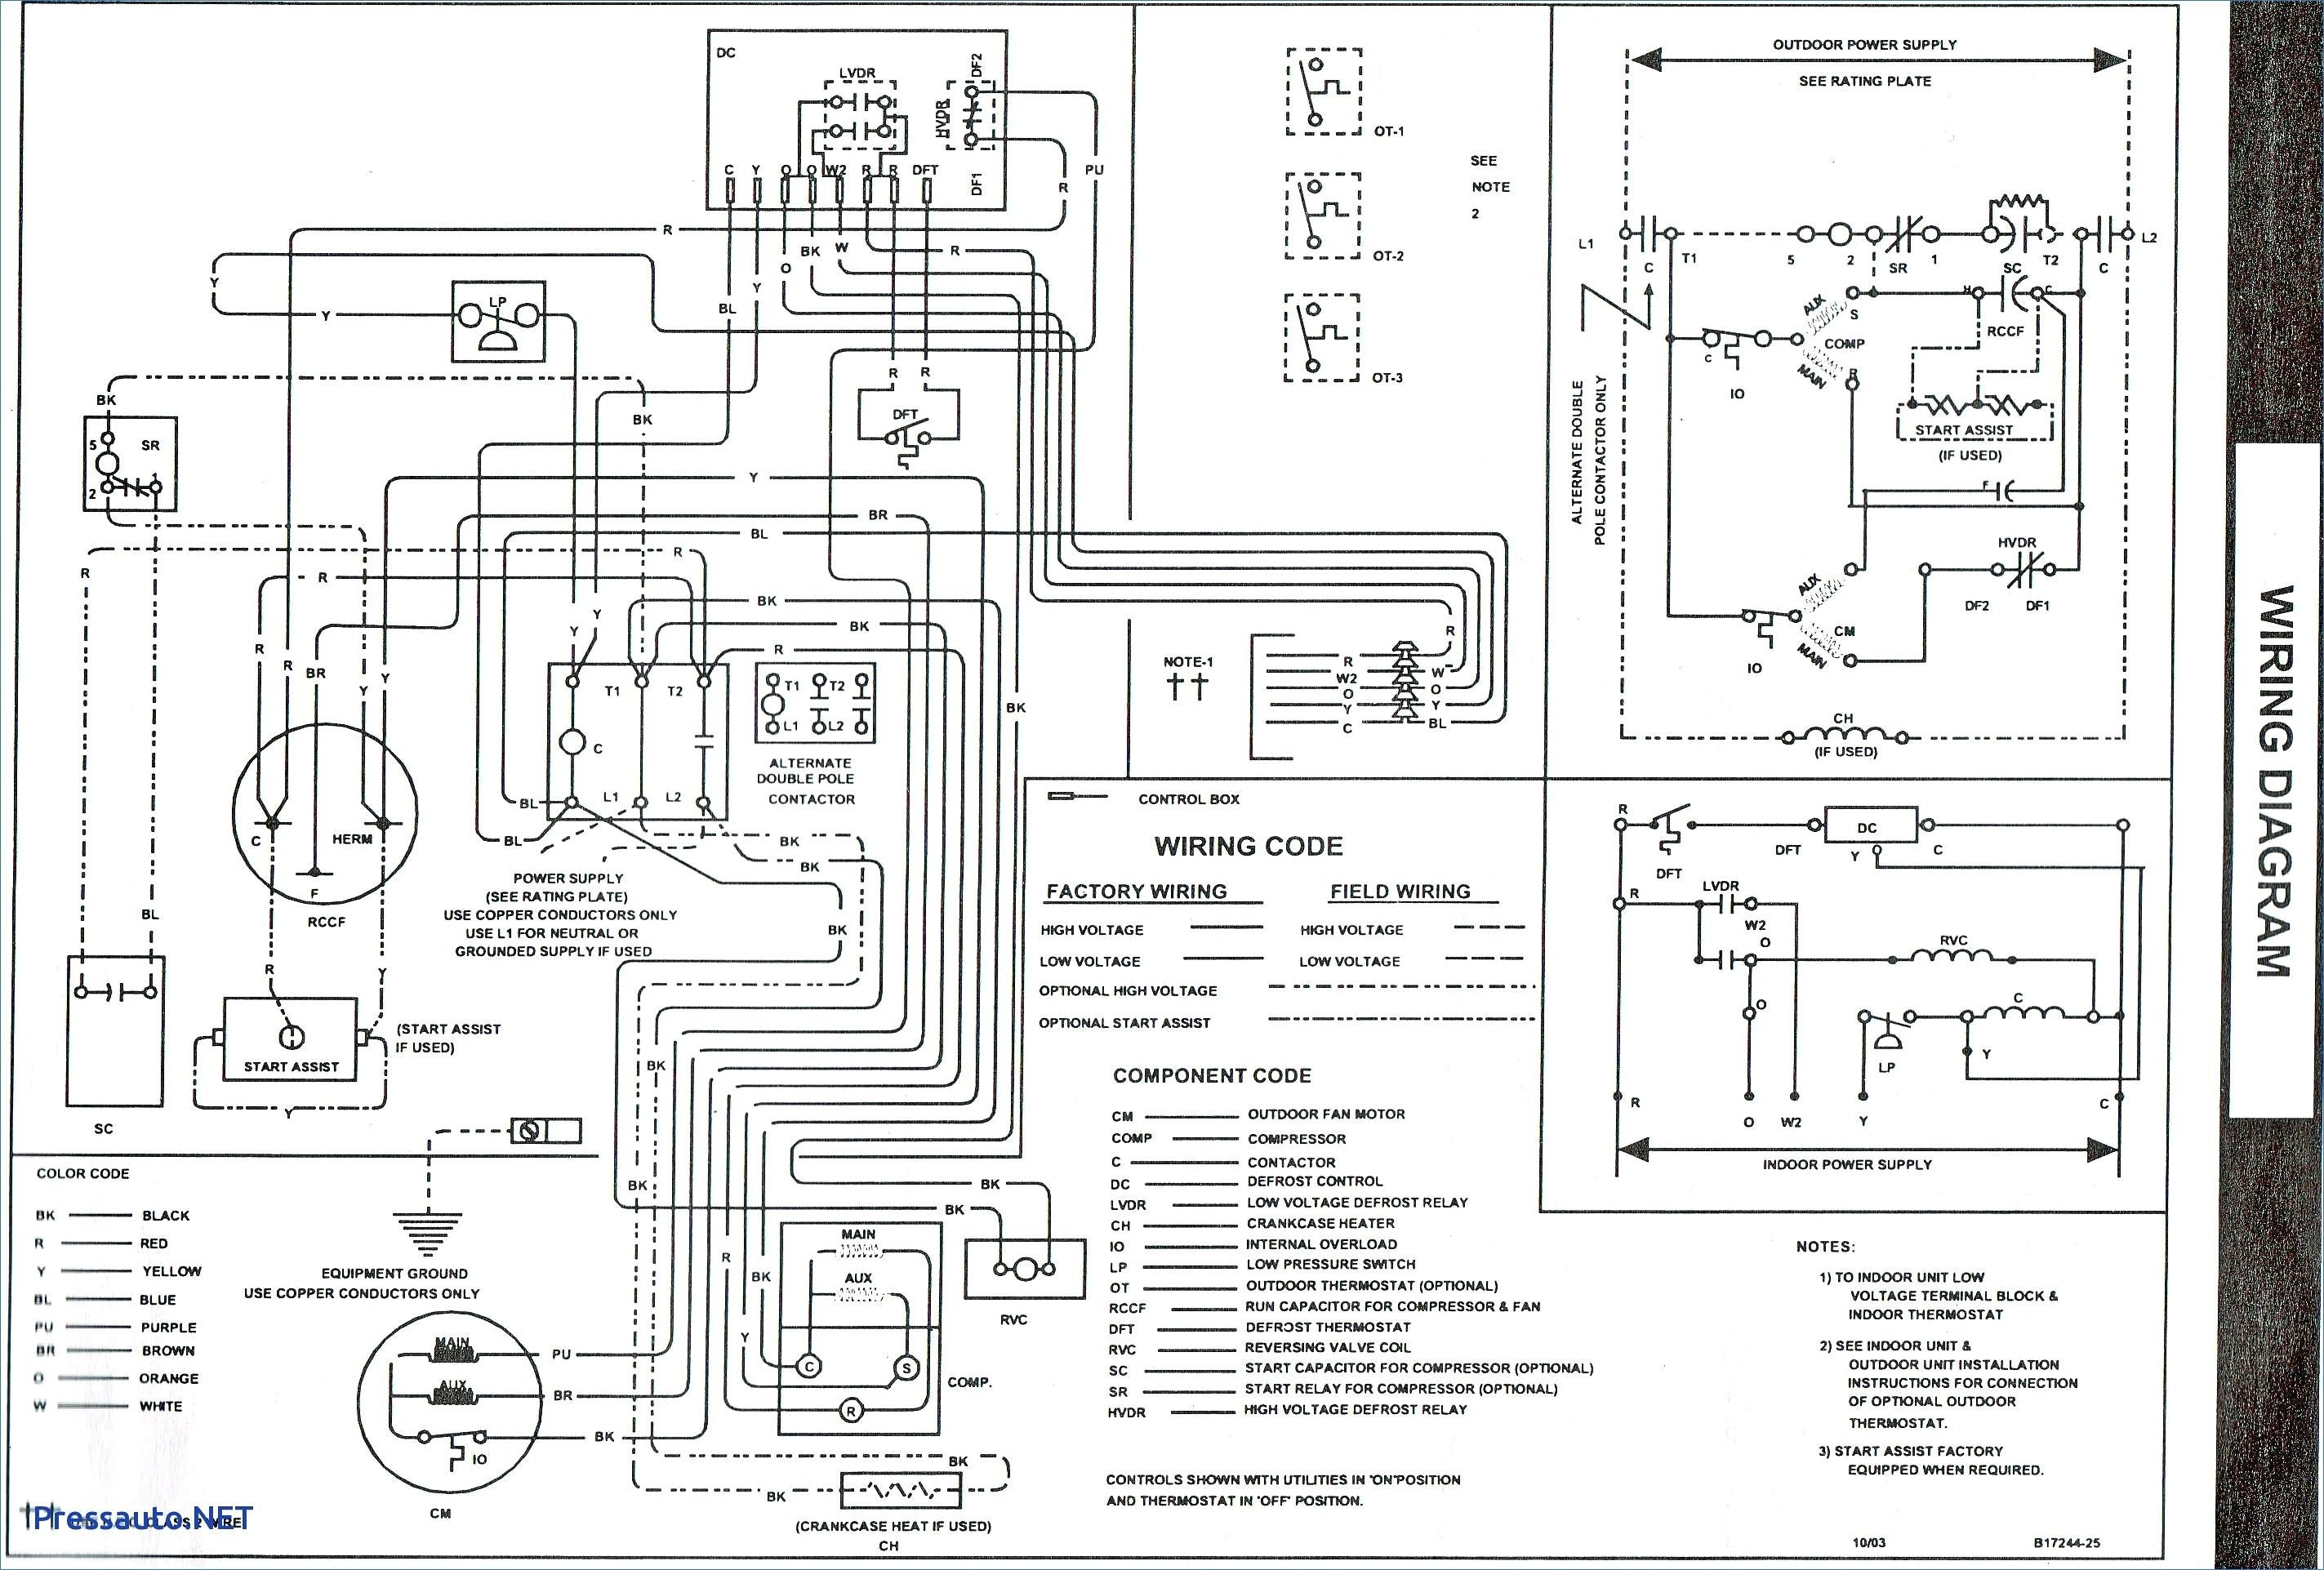 Unique Wiring Diagram For Goodman Gas Furnace Diagram